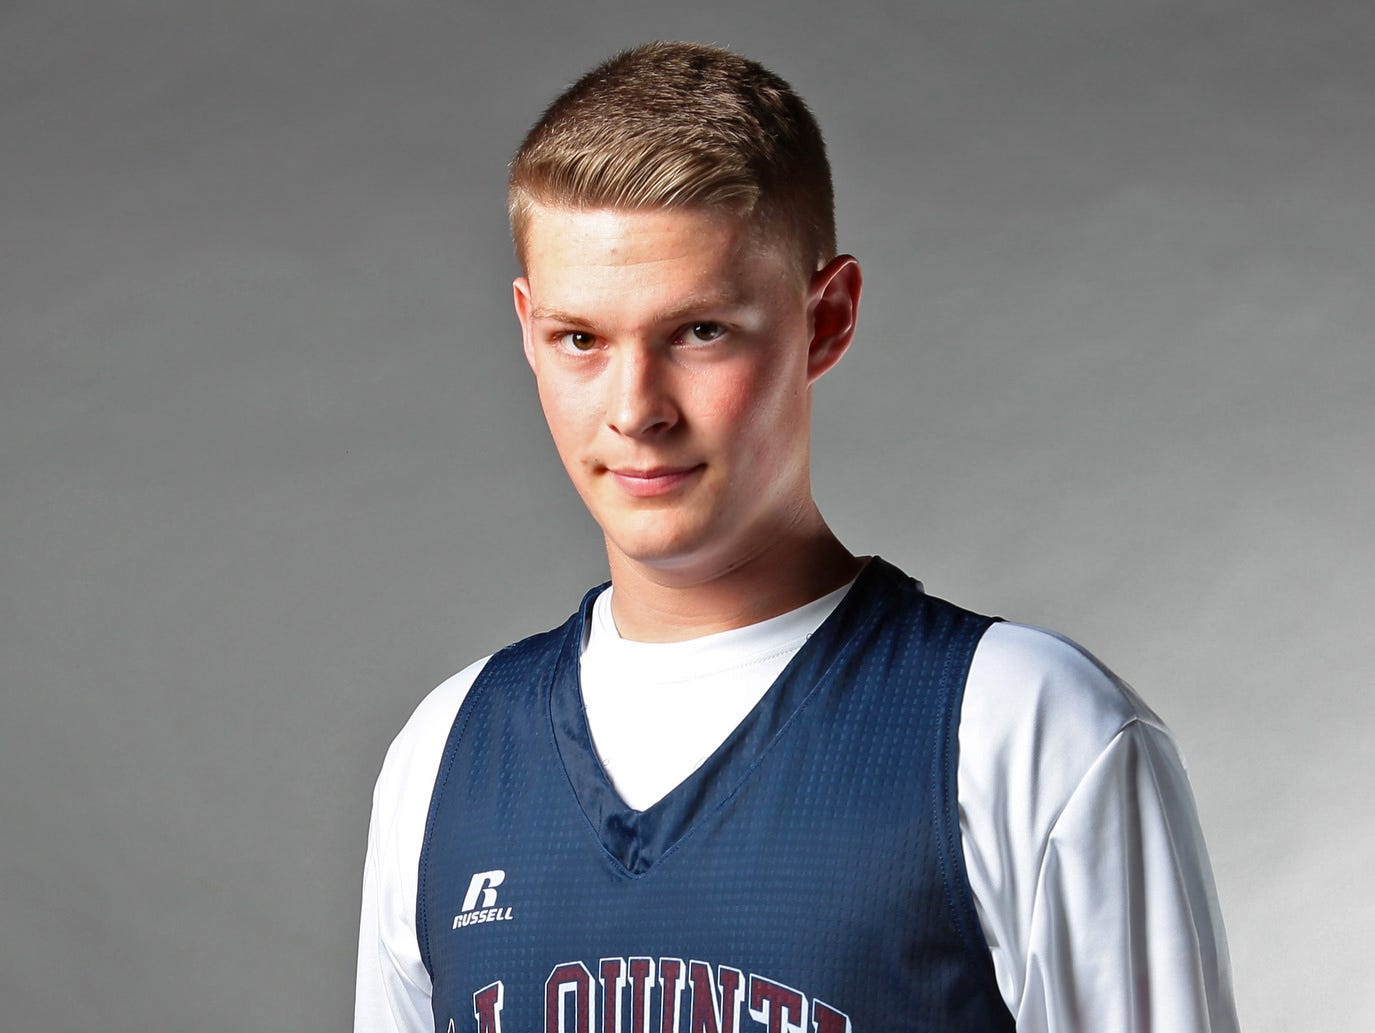 La Quinta basketball player senior Jared Broadhead, photographed on Wednesday, March 4, 2015, averaged 15 points, eight rebounds, and five assists per game this season and helped lead the Blackhawks to a Desert Valley League championship.